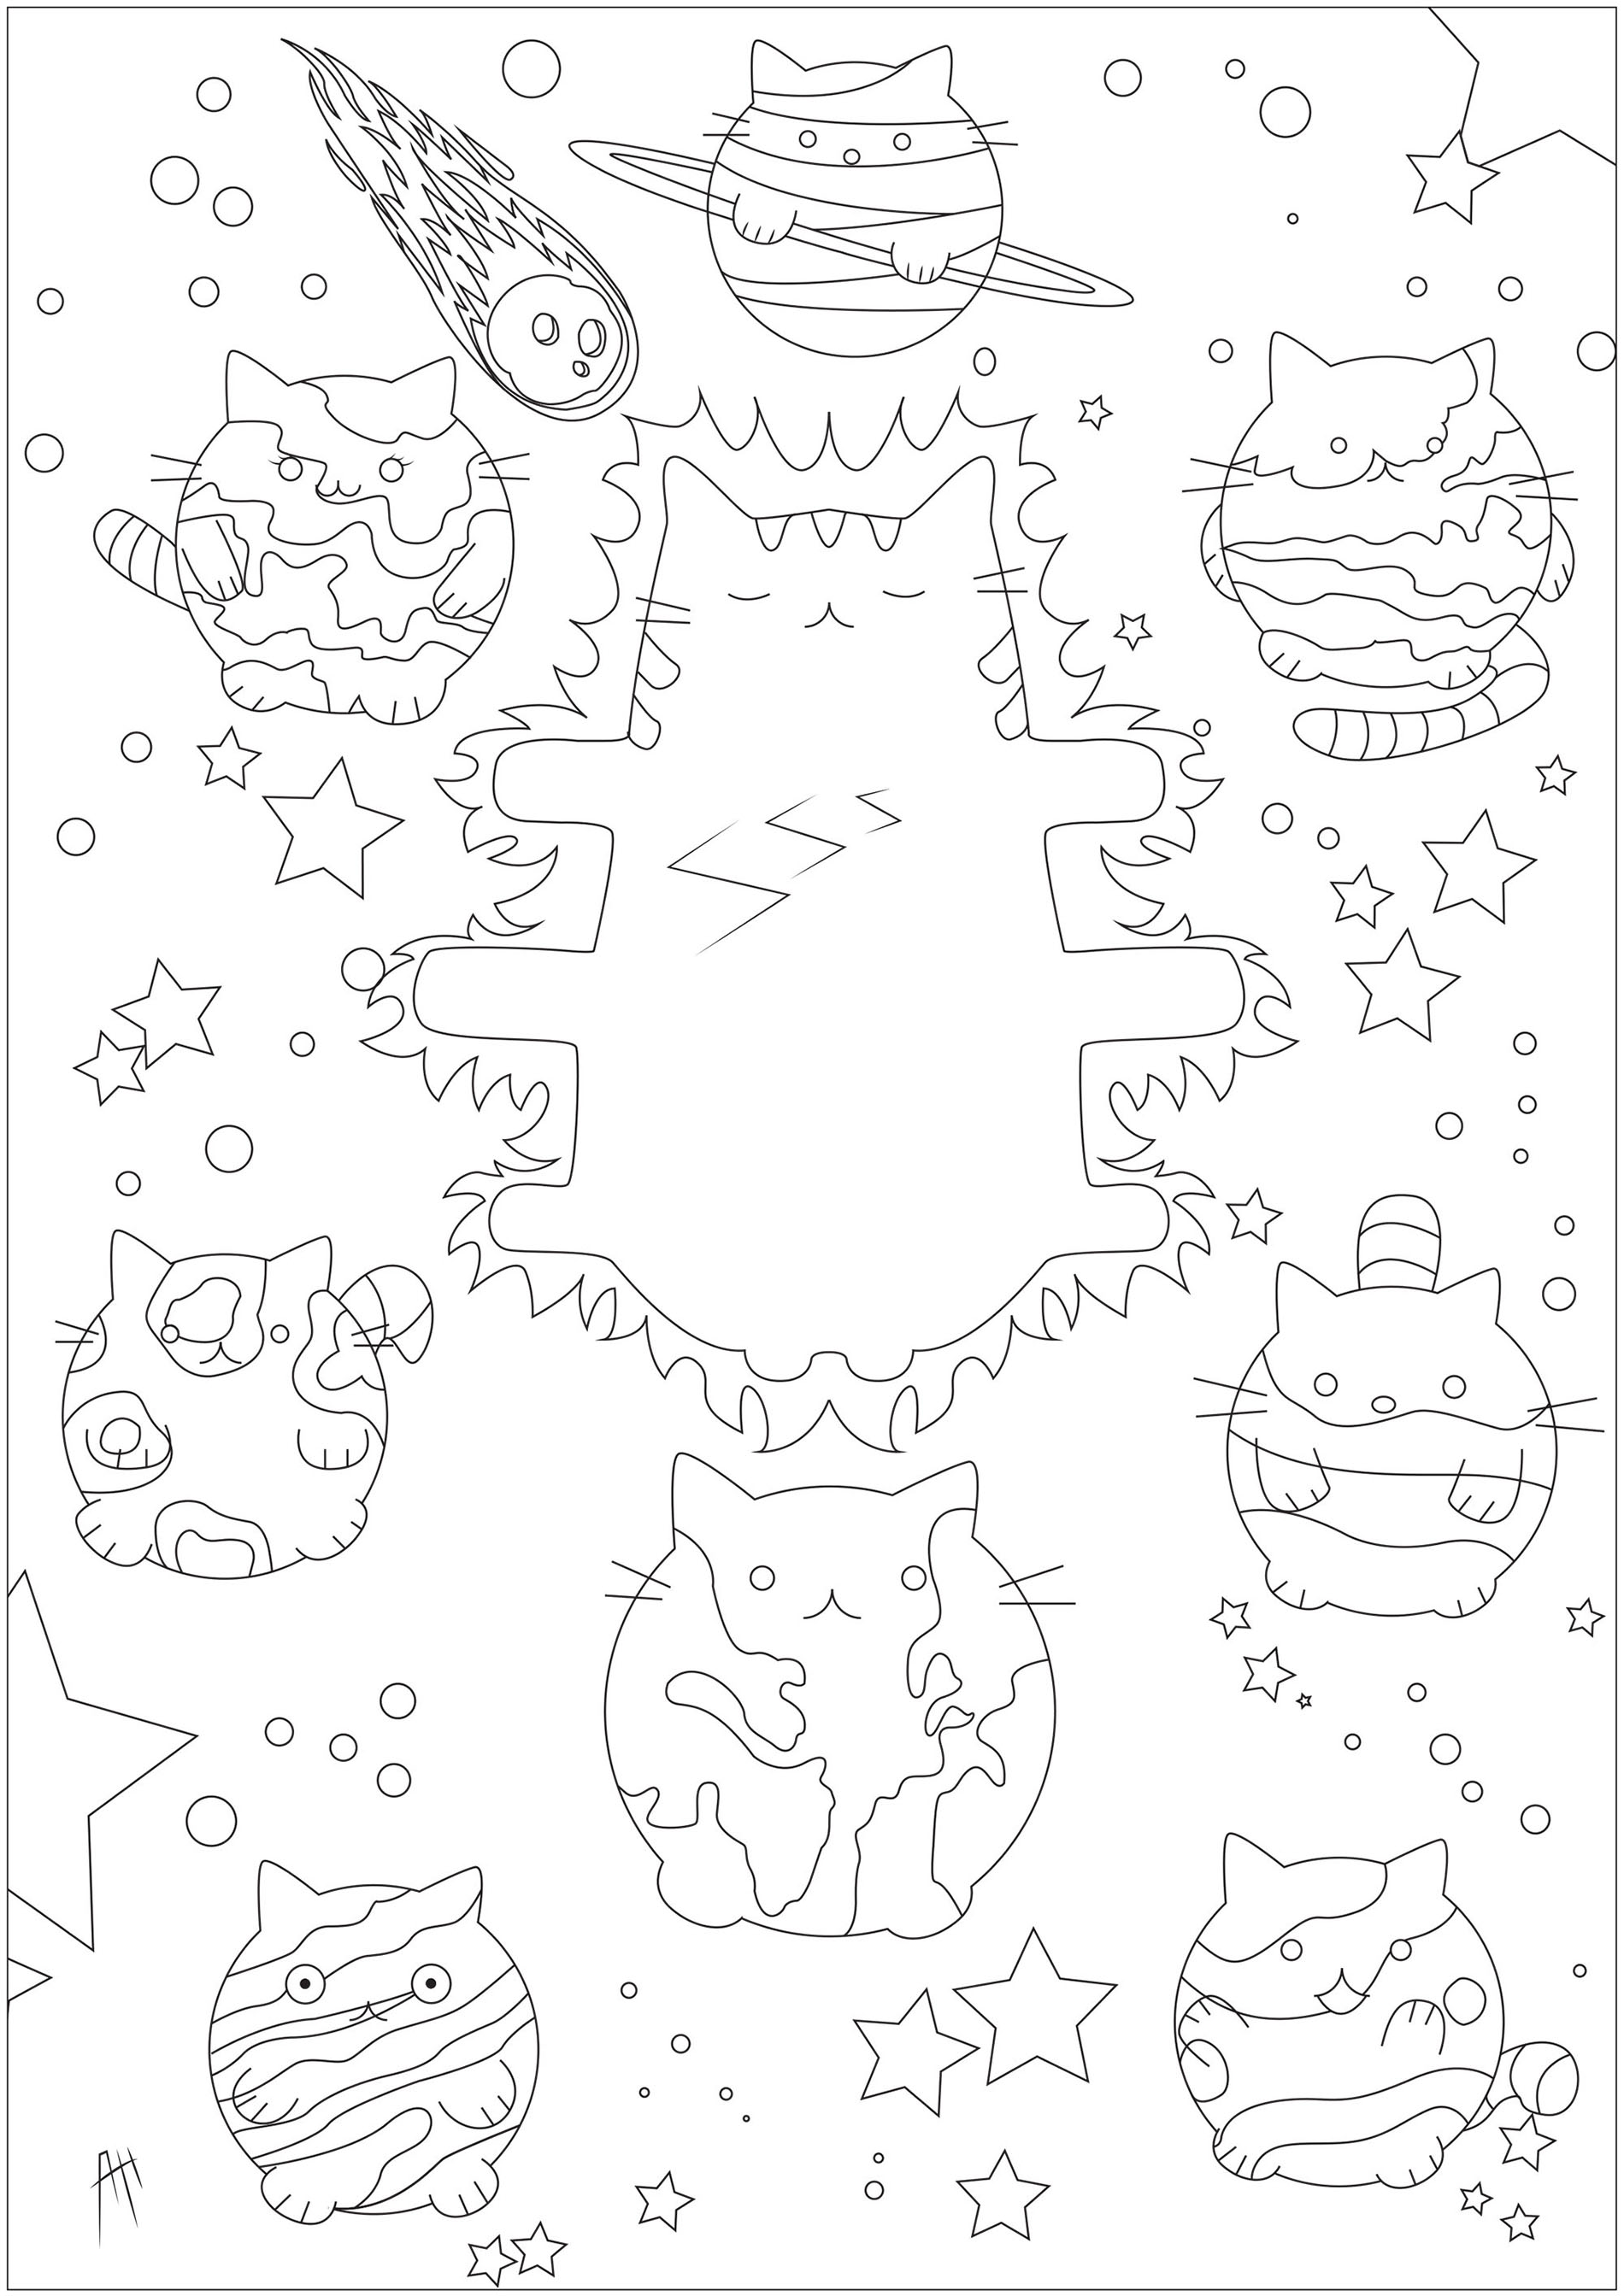 Cute free Pusheen coloring page to download